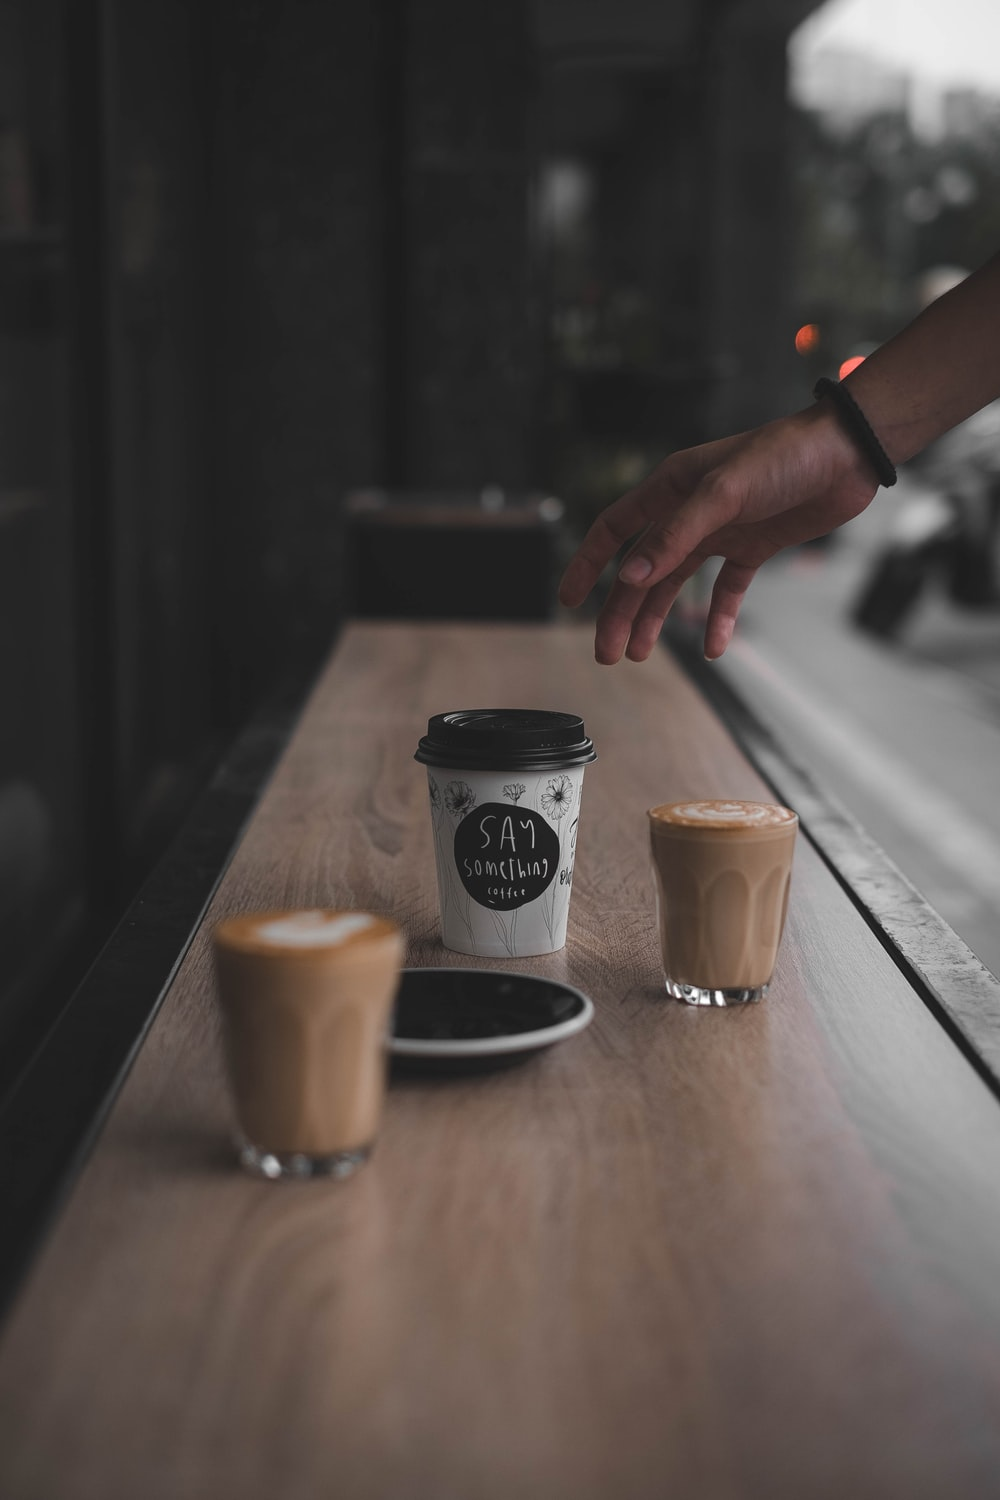 person reaching coffee cup beside glass on brown surface